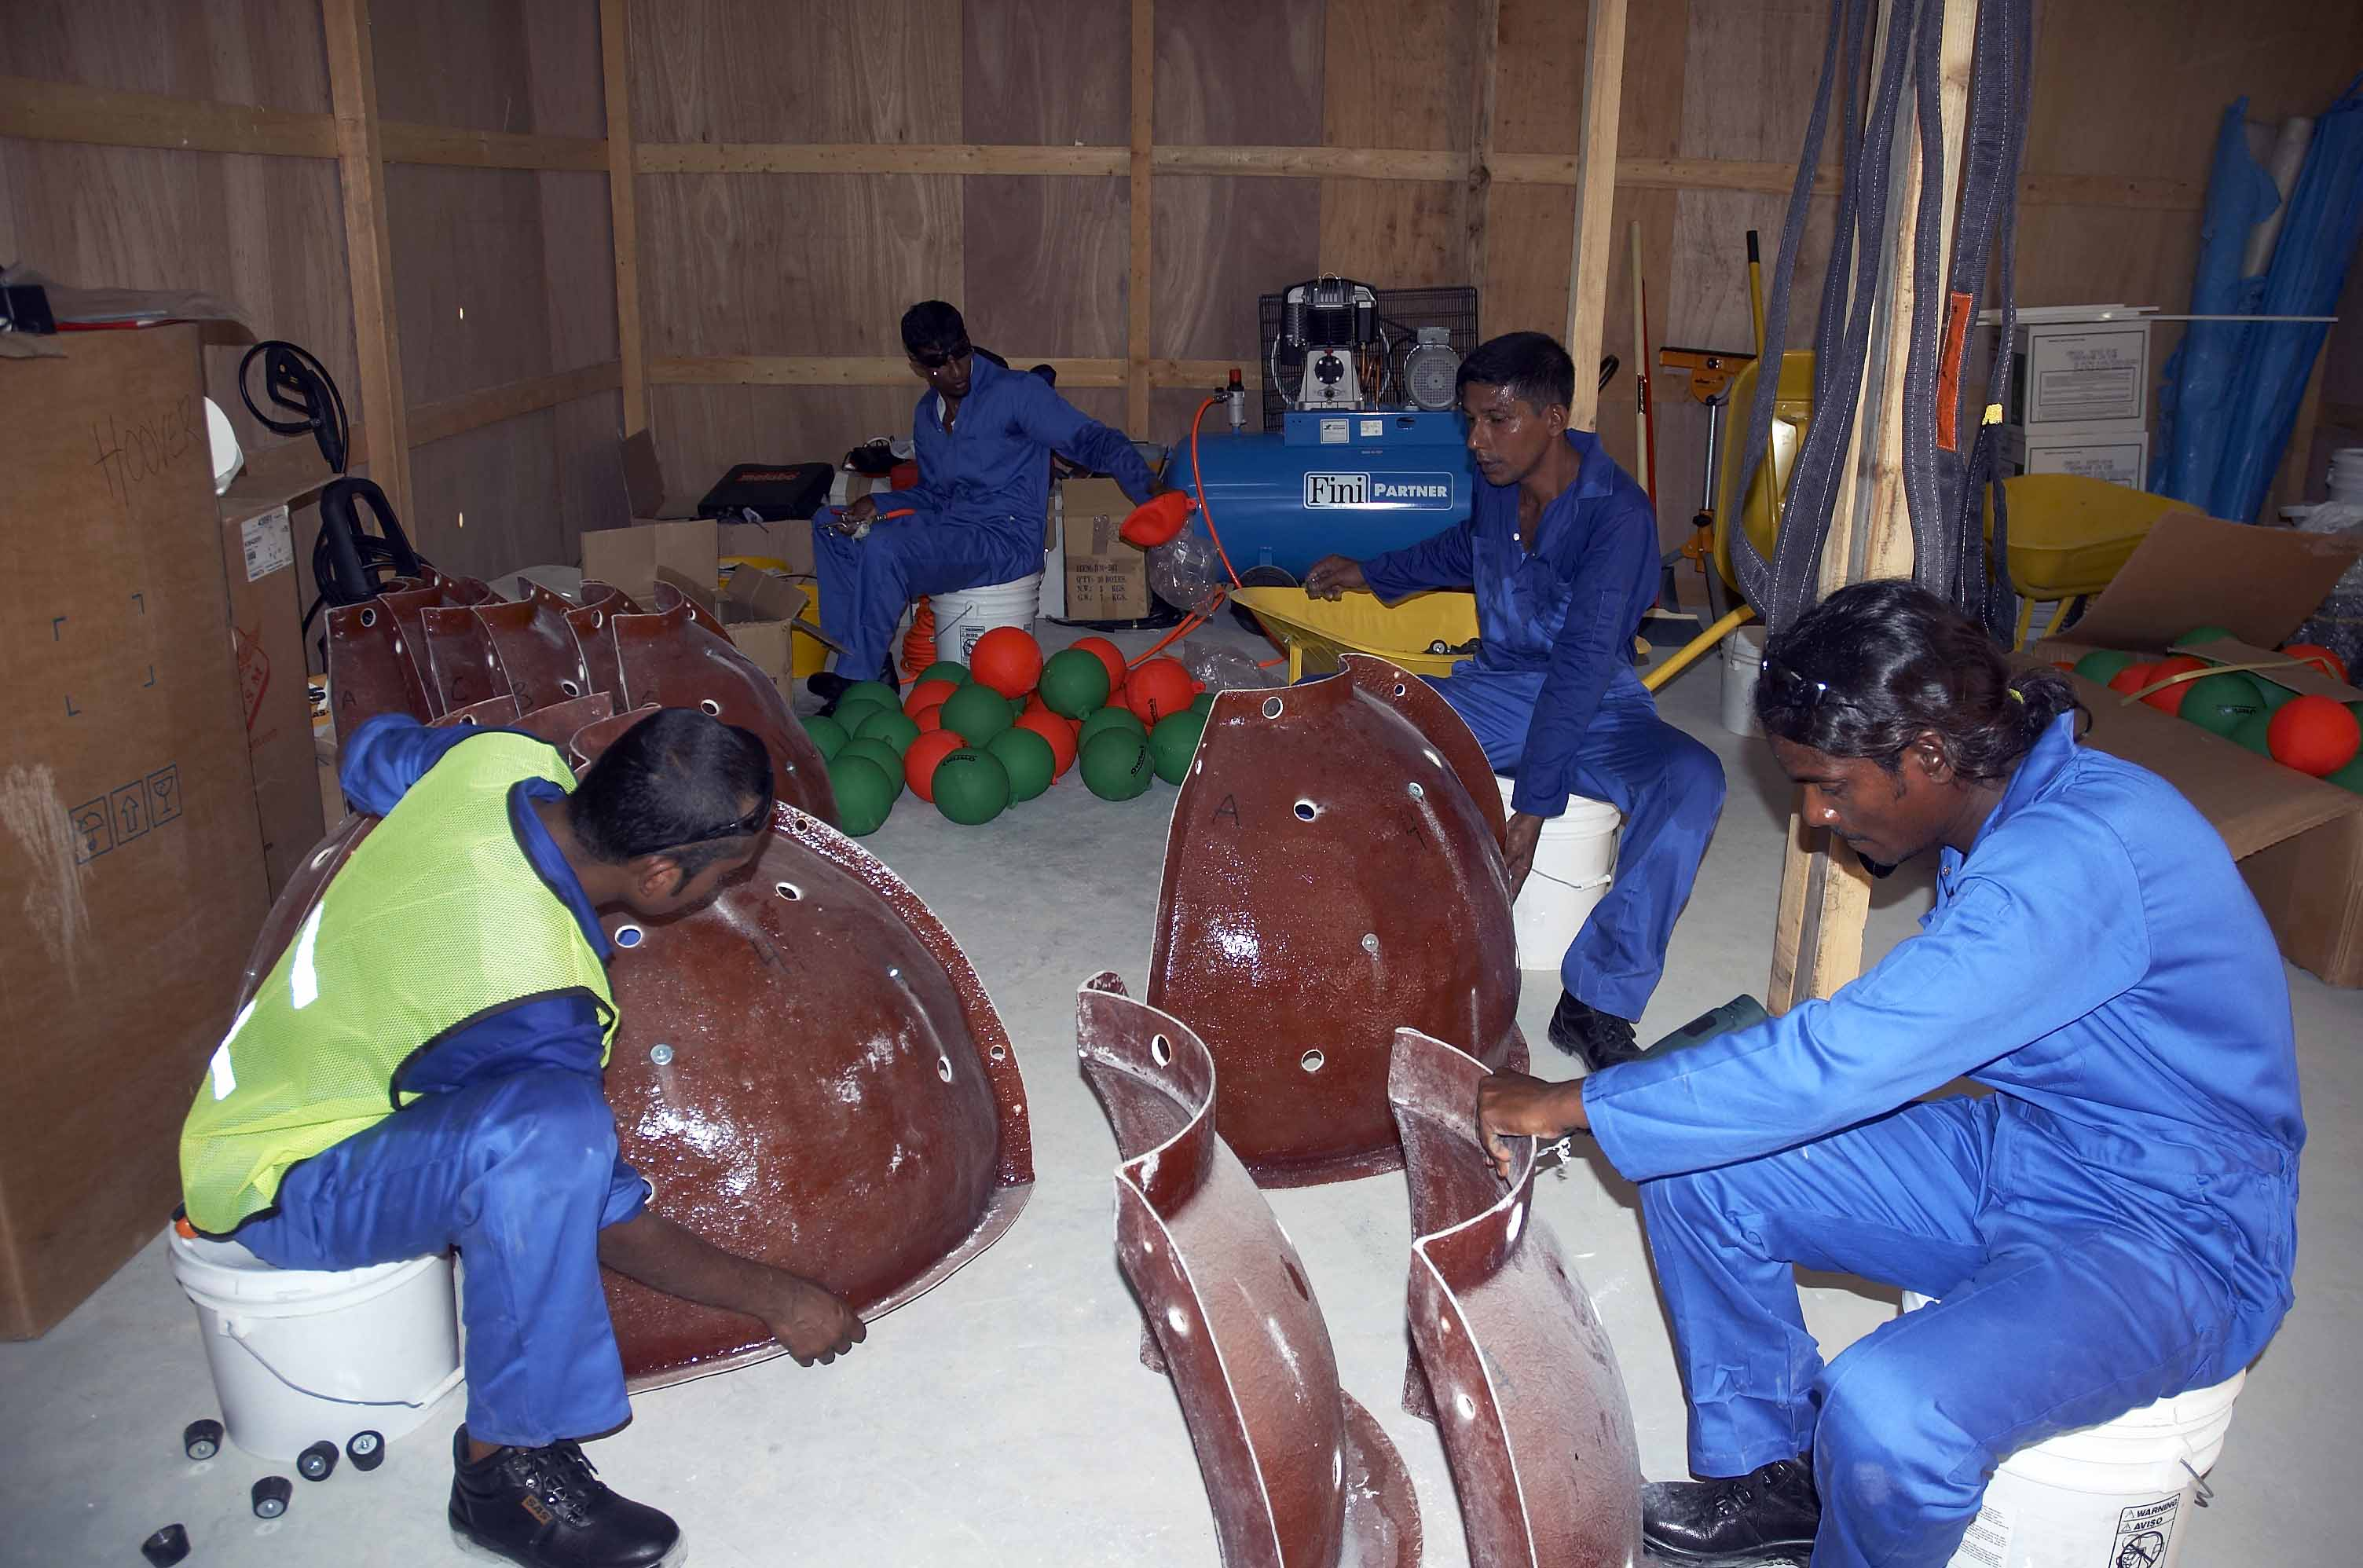 Preparation of the Molds 1.jpg